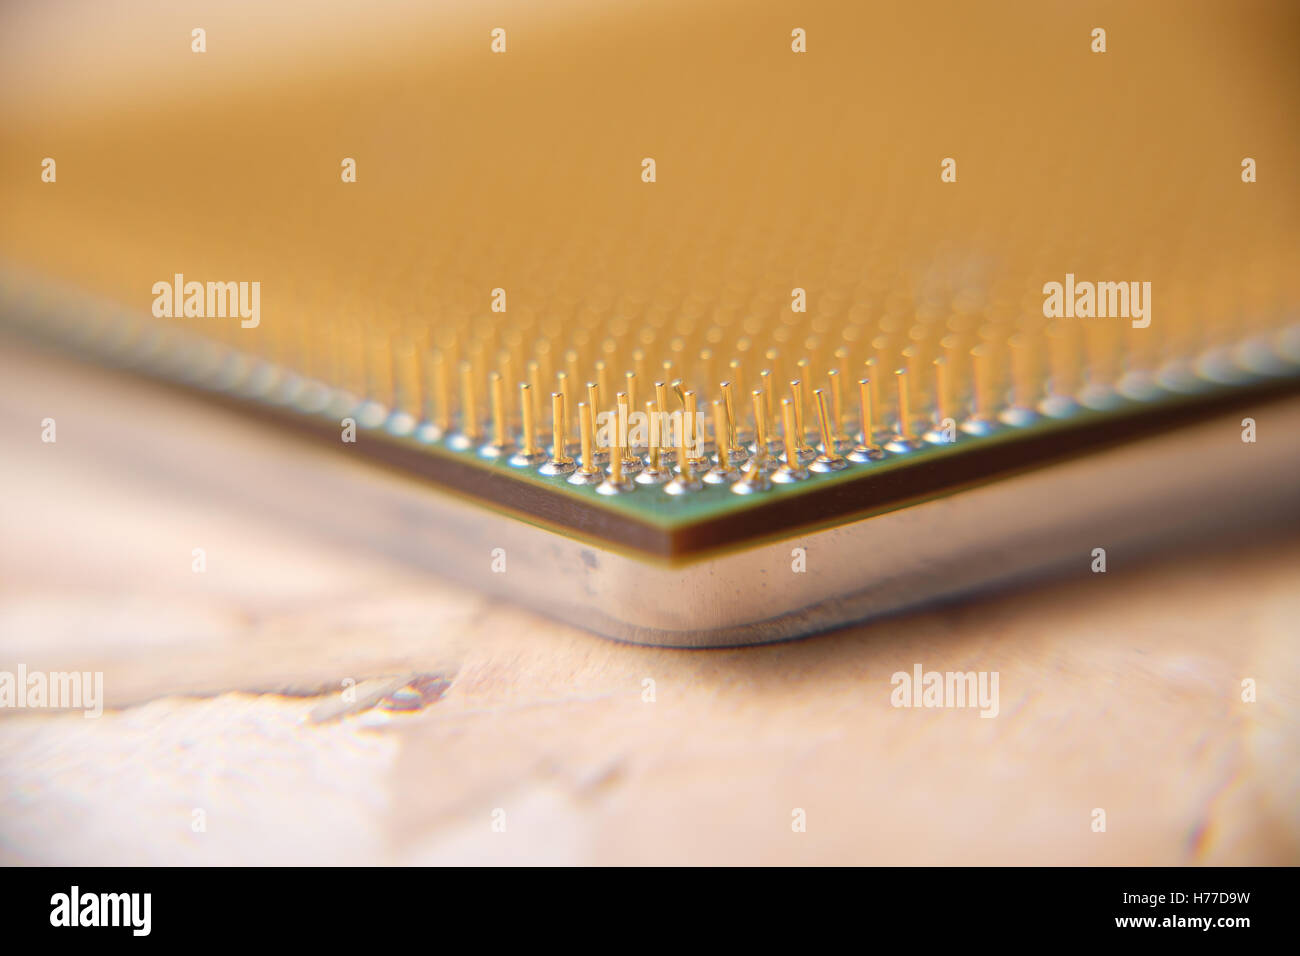 Macro shot of damaged central processing unit CPU - Stock Image